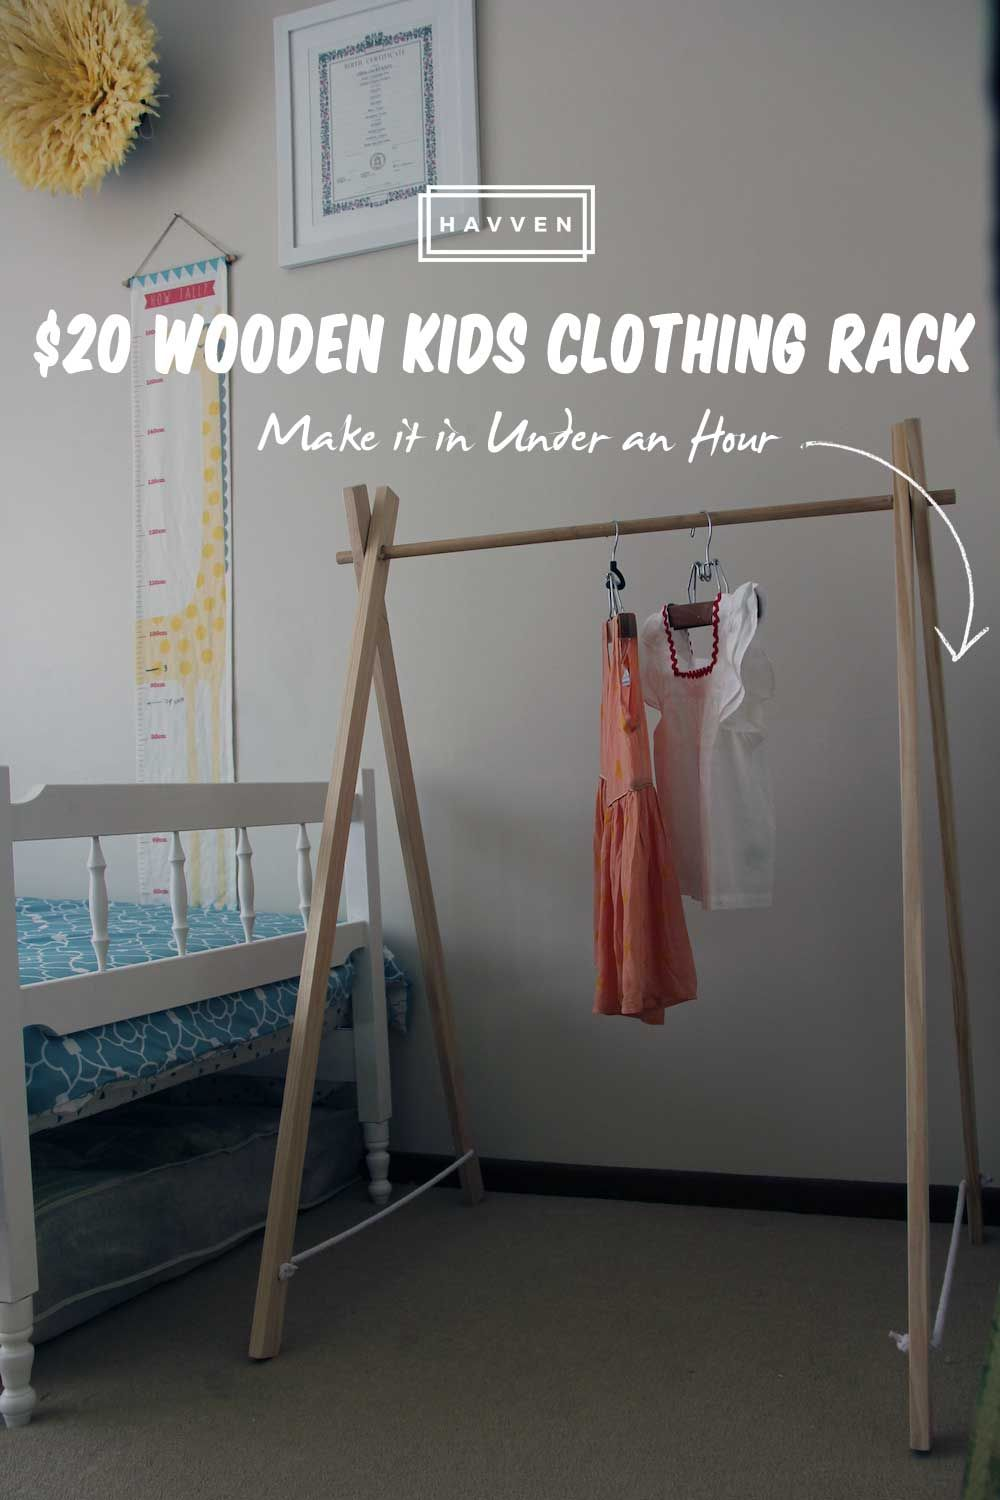 Diy 20 Wooden Kids Clothing Rack Make In Under An Hour Le Tala Wadrobe